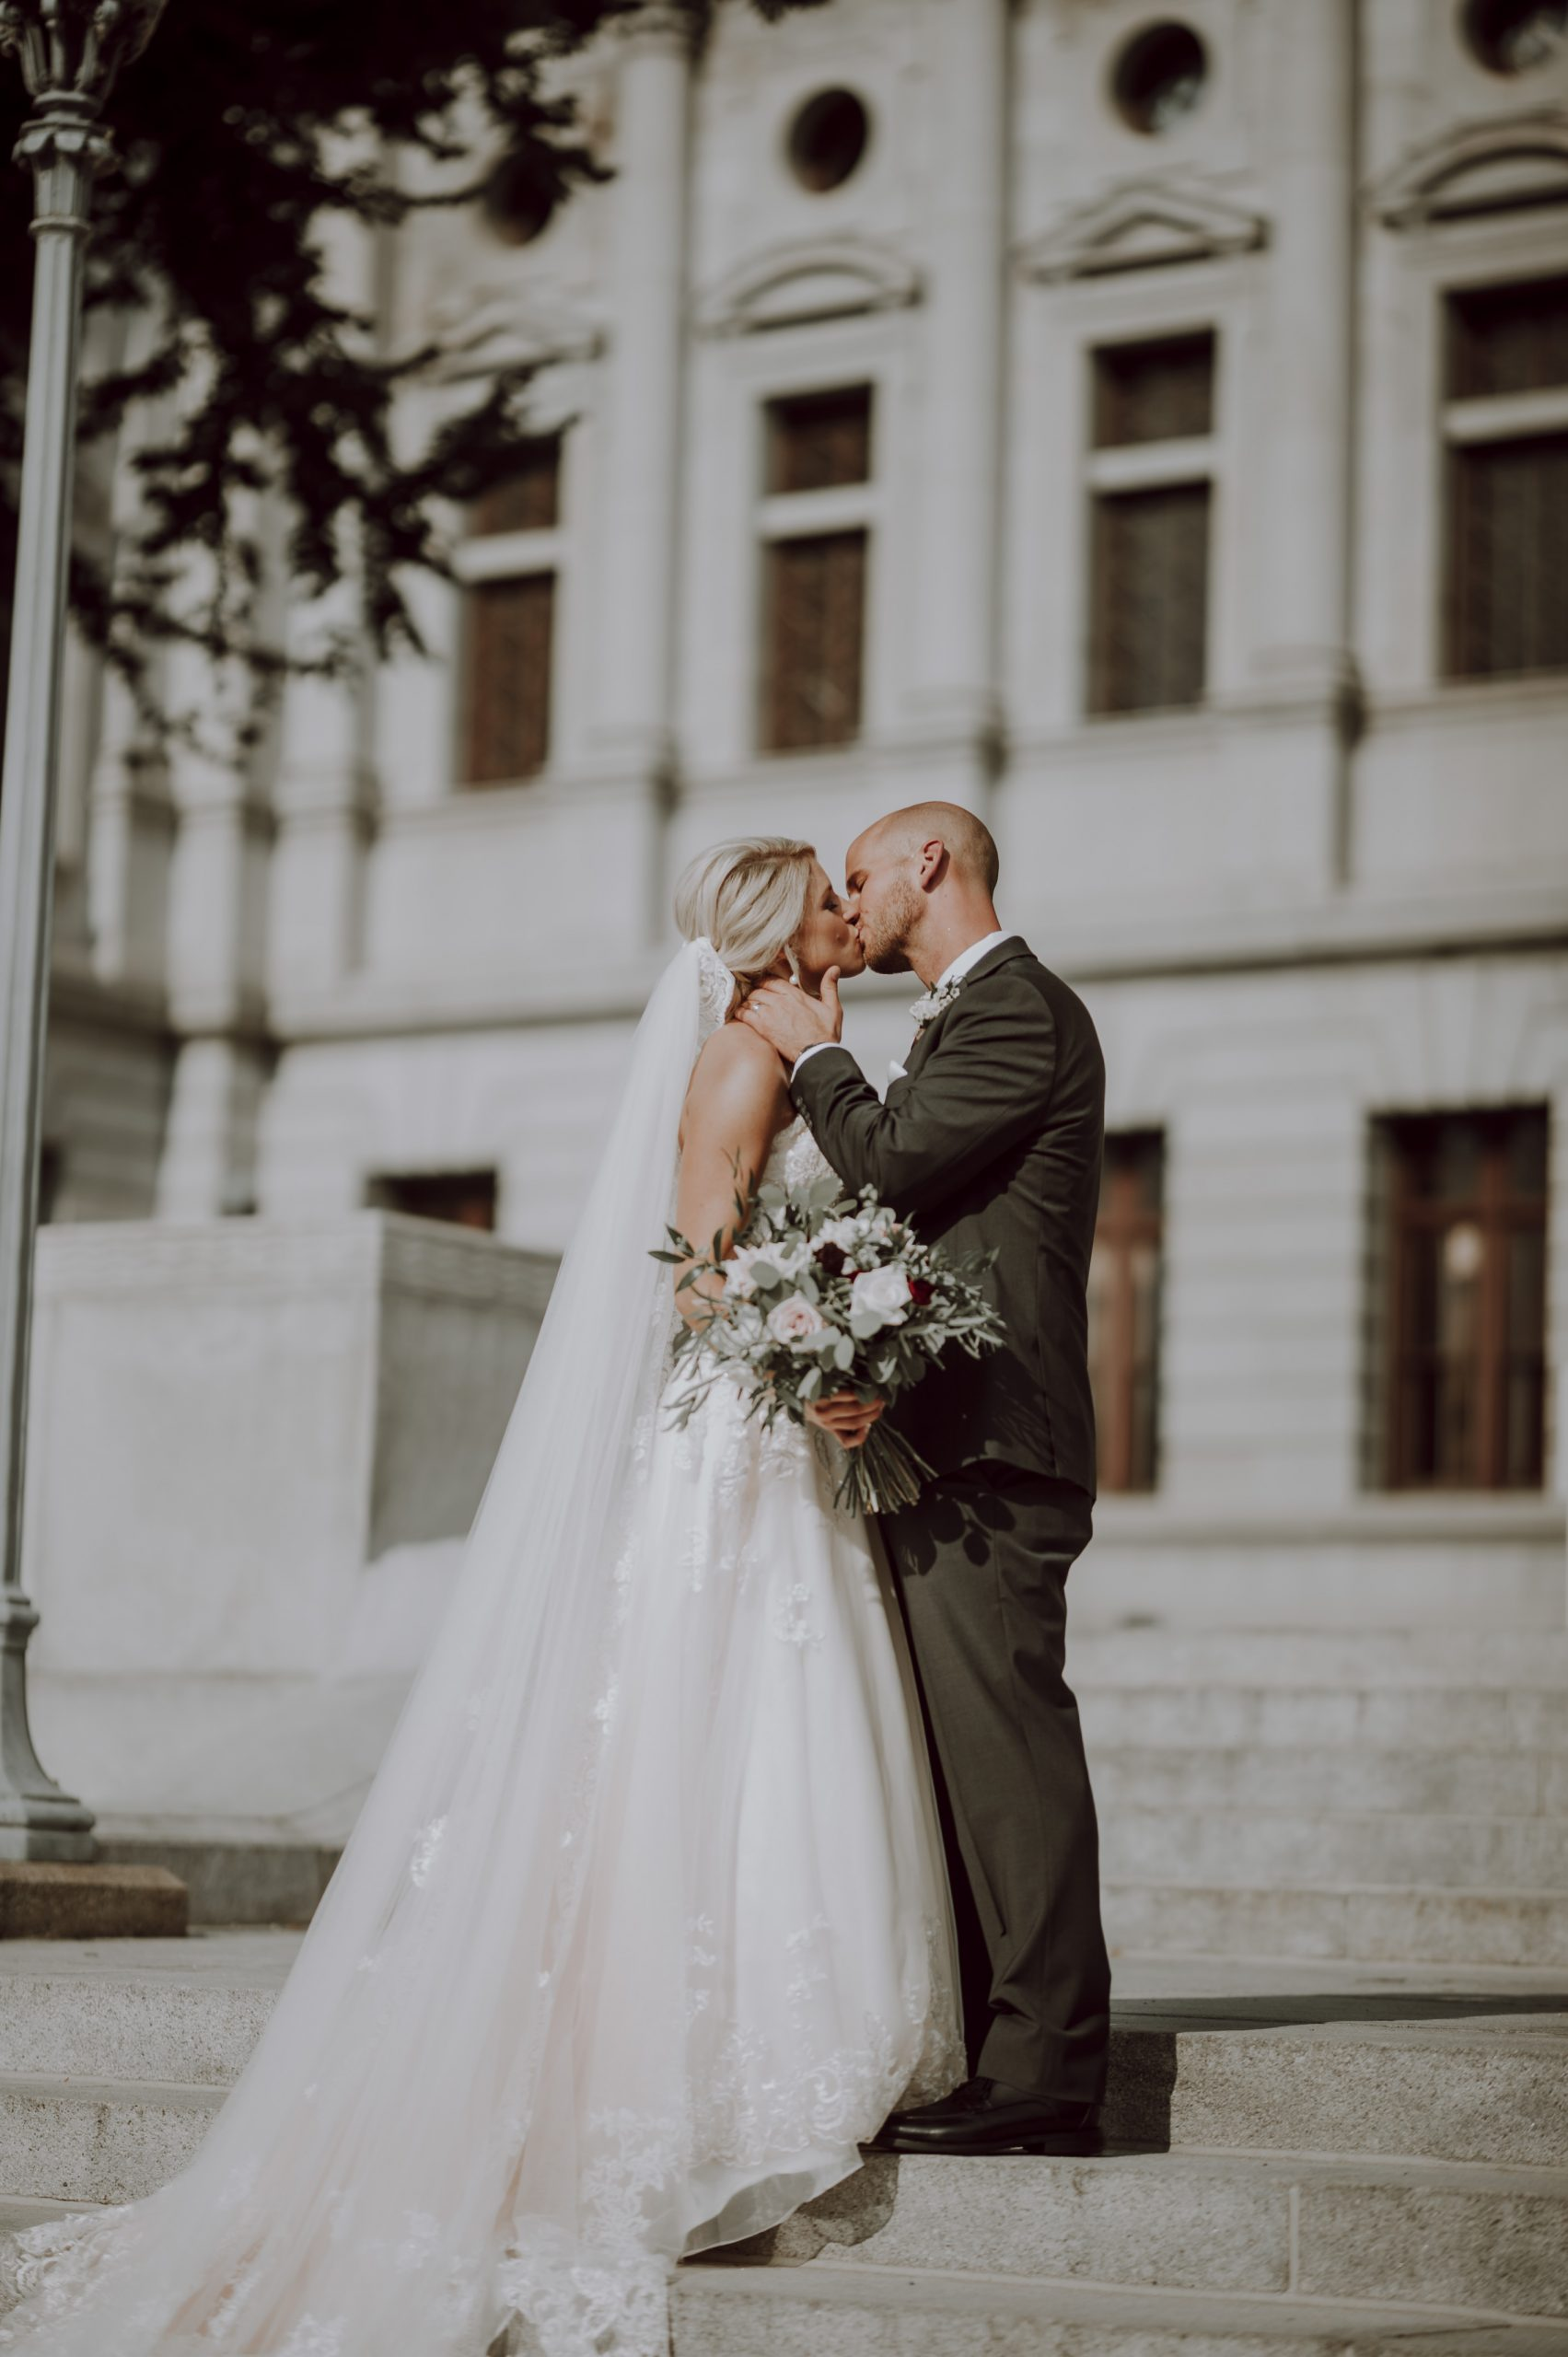 Just married and just infatuated with each other. Captured by Lovefusion Photography at Stock's Manor in Mechanicsburg, PA. Featured on Dream Weddings.